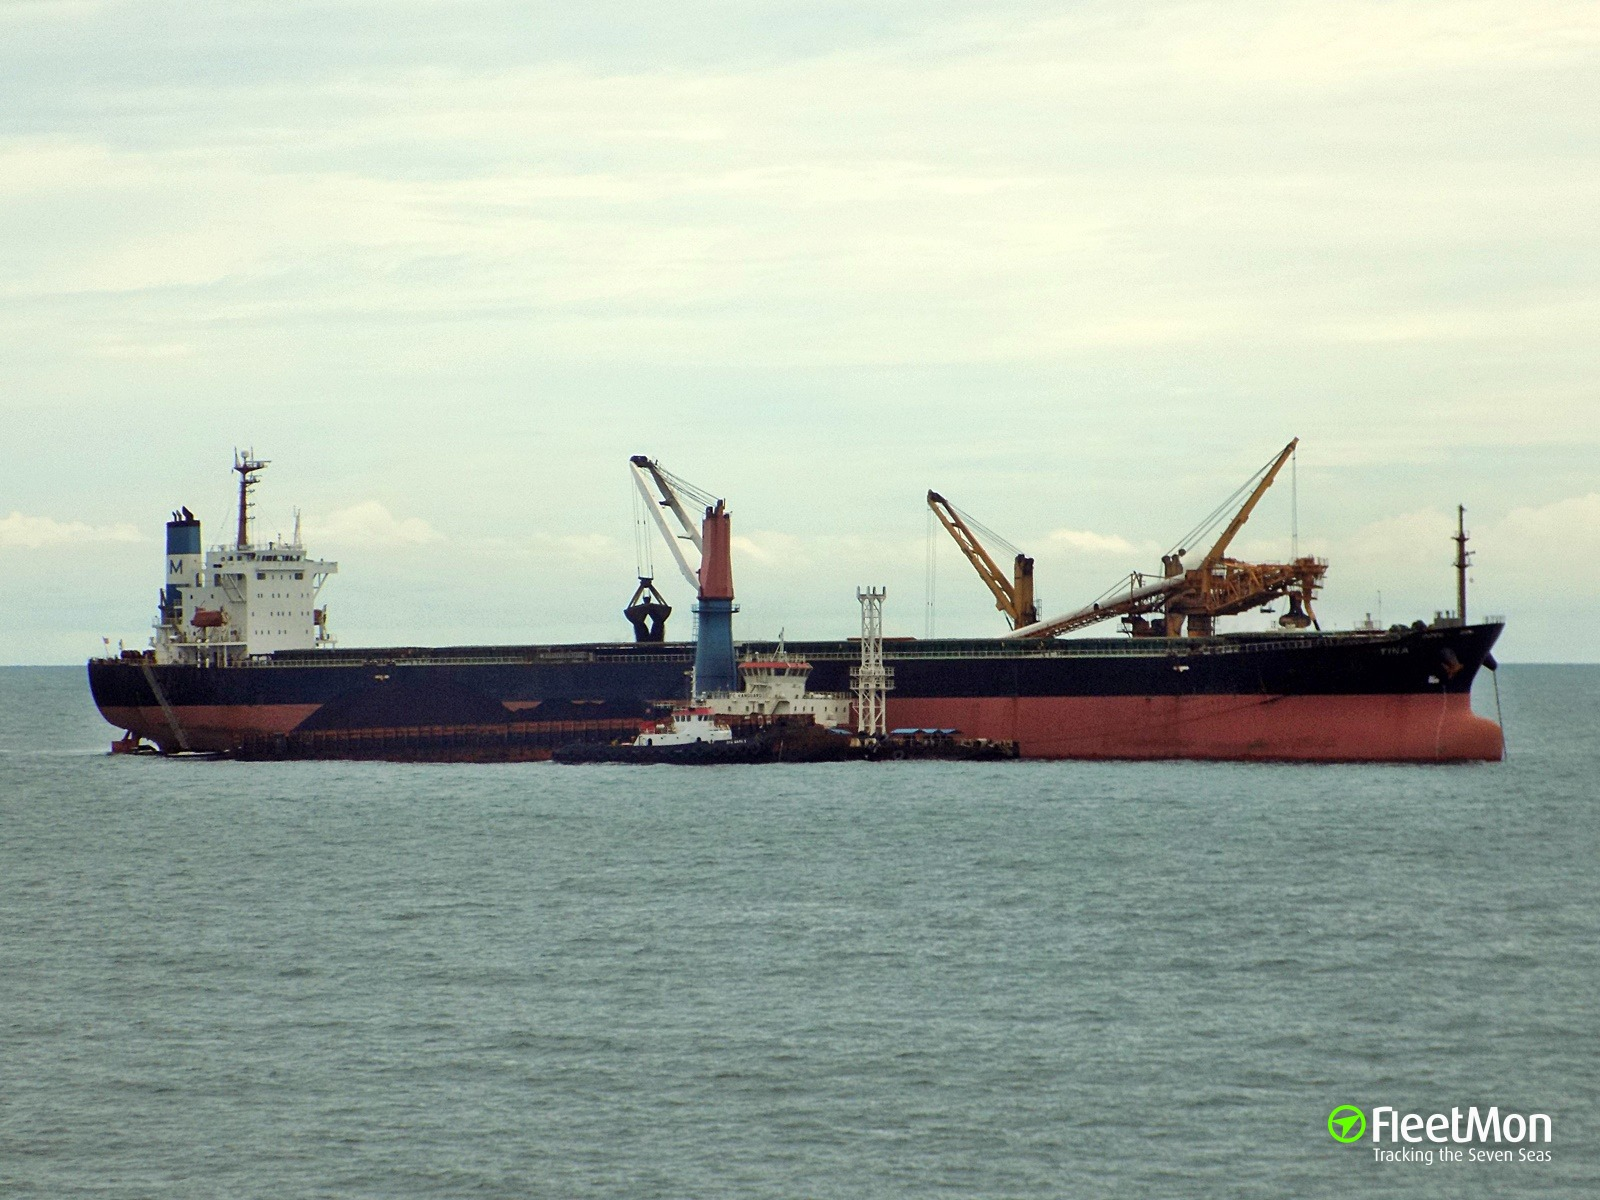 Bulk carrier TINA arrested in Ennore, India